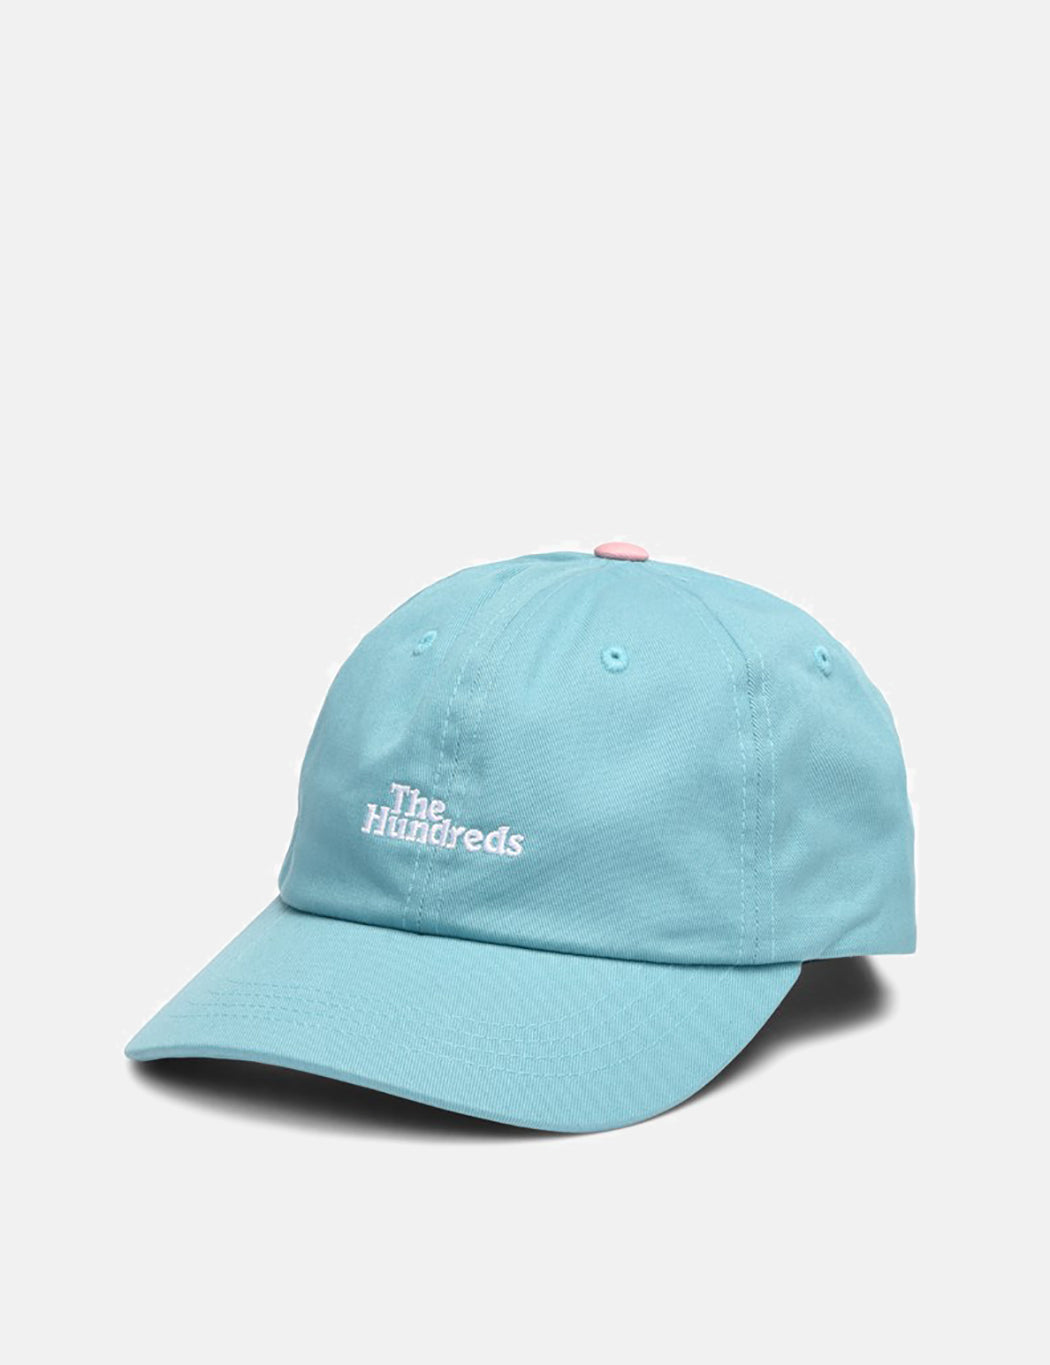 The Hundreds Hub Dad Cap - Turquoise | URBAN EXCESS.